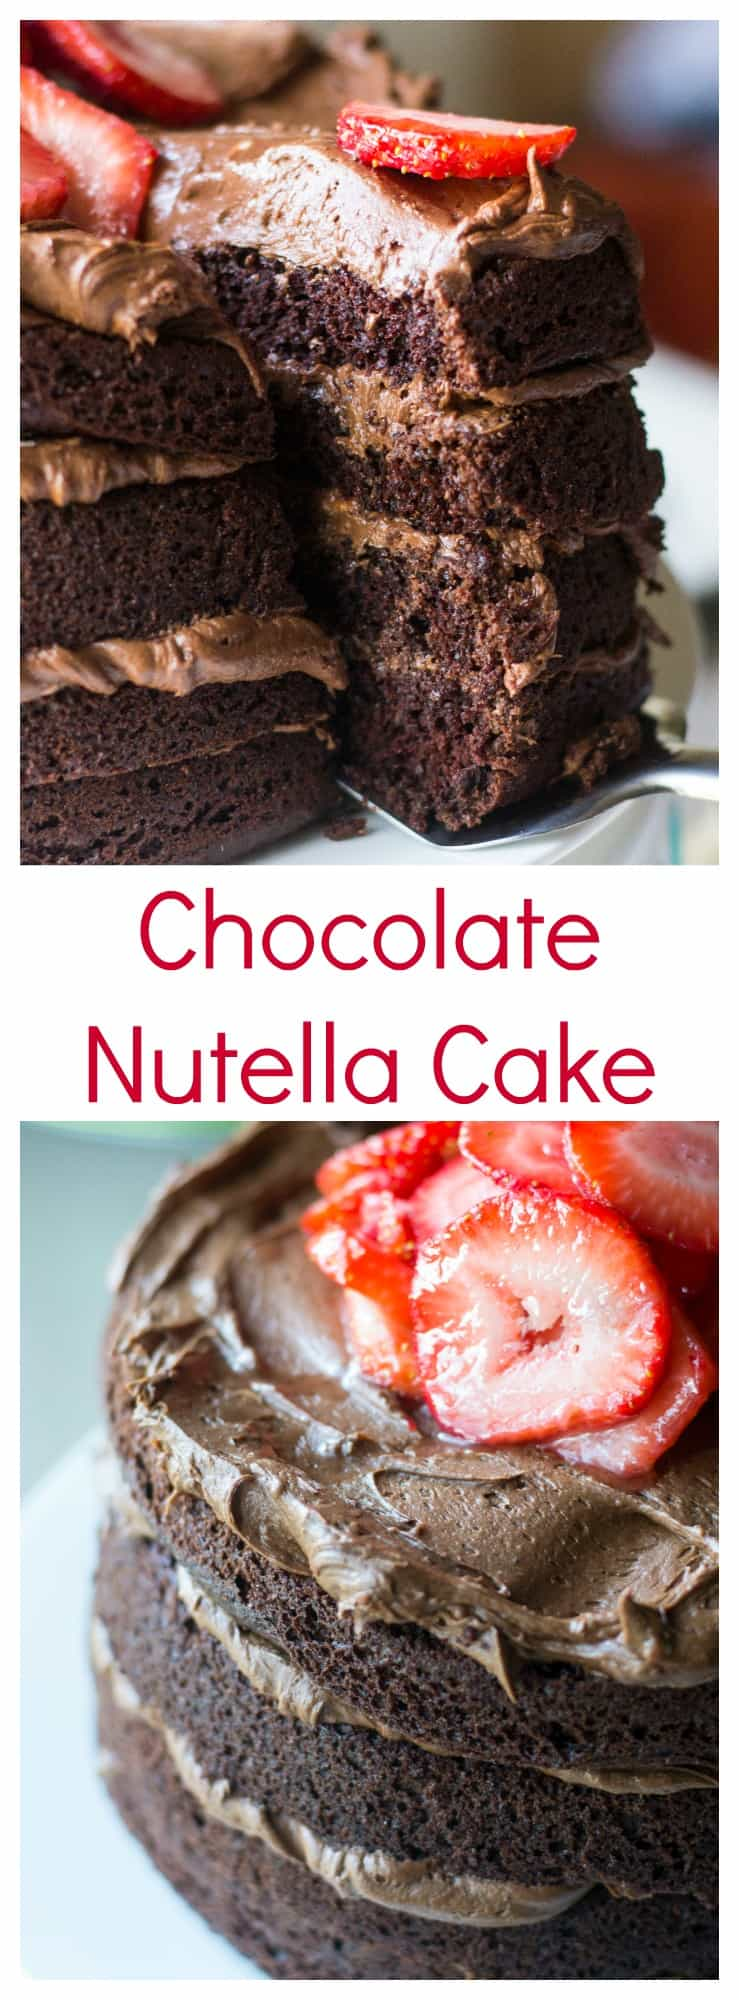 Chocolate Nutella Cake | Chocolate Nutella Cake is the perfect combination of decadent dark chocolate cake and delicious Nutella buttercream frosting topped with the tangy sweetness of strawberries. The perfect chocolate cake for any occasion!! | A Wicked Whisk | https://www.awickedwhisk.com #chocolatenutellacake #chocolatecake #nutella #dessert #valentinesdaydessert #chocolatedessert